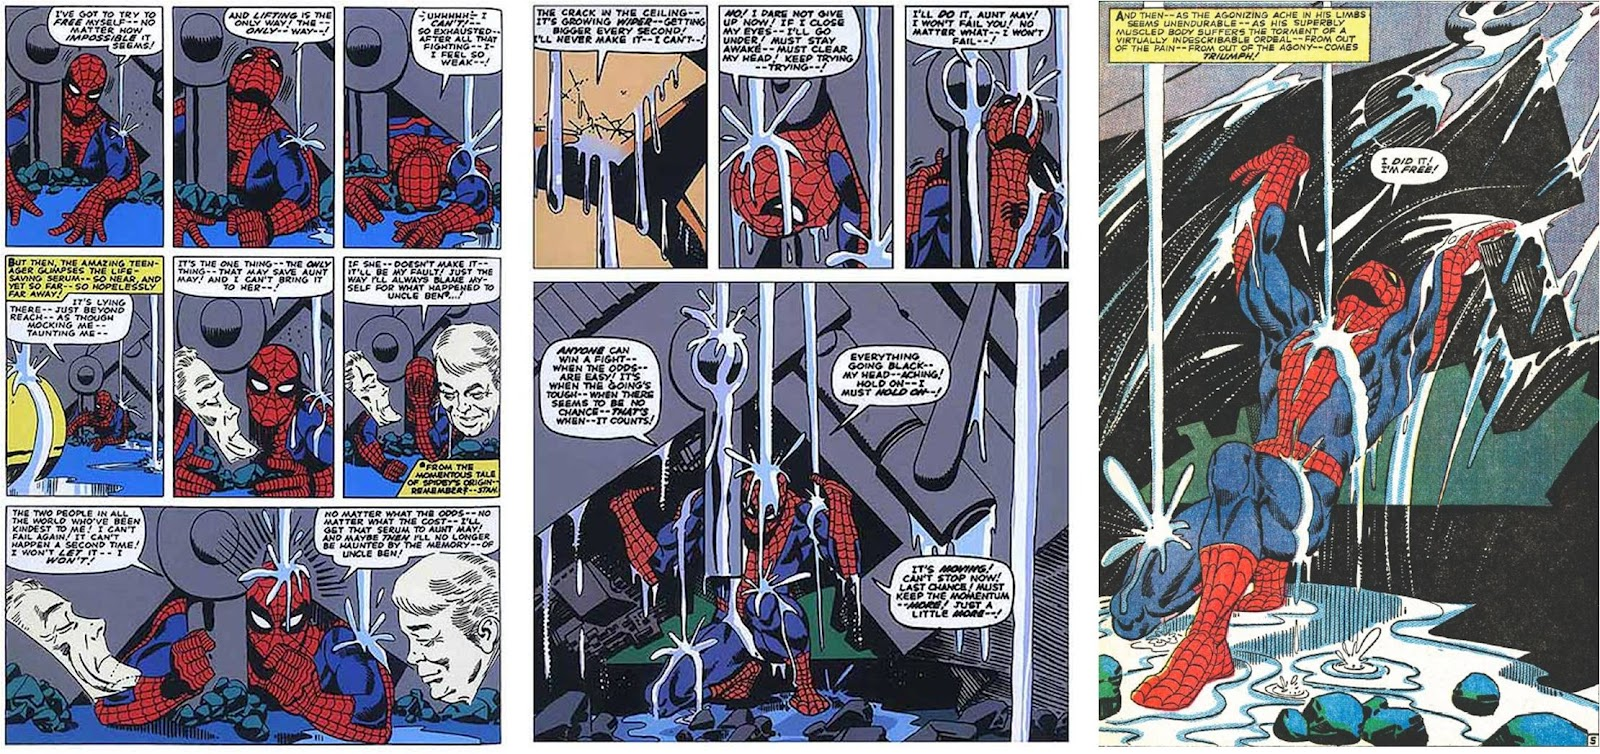 Sequential art at its finest!